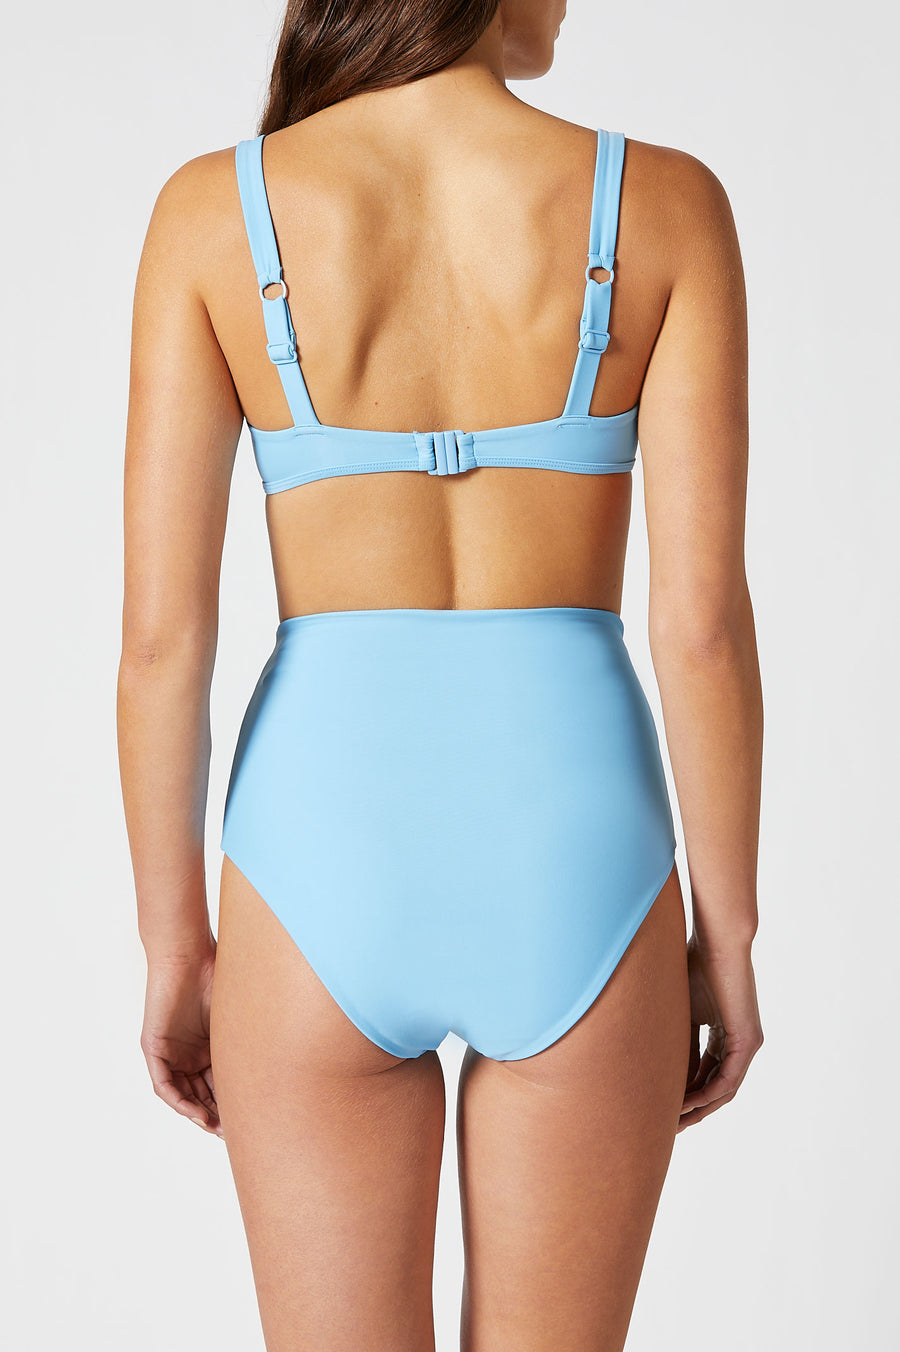 The Square Bikini Top features thick, supportive straps and a flattering square neckline.